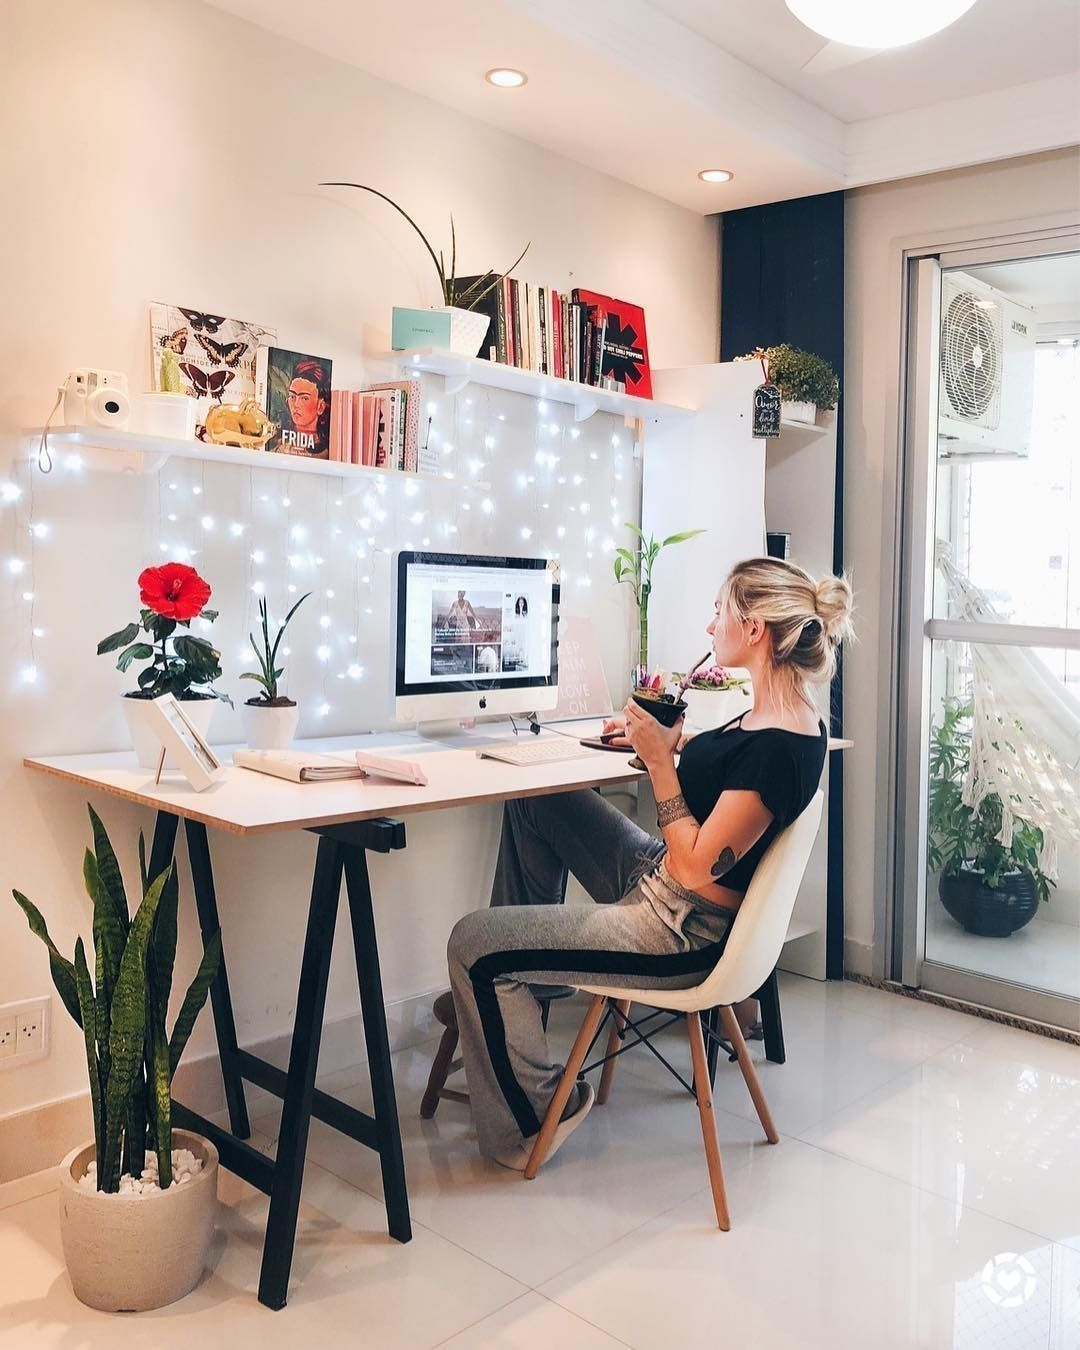 Get Your Modern Workspace In No Time With These Stunning 20 Home Office And Cubicle Decor Ideas Www Essentialhome Eu In 2020 Home Office Decor Home Decor Room Decor